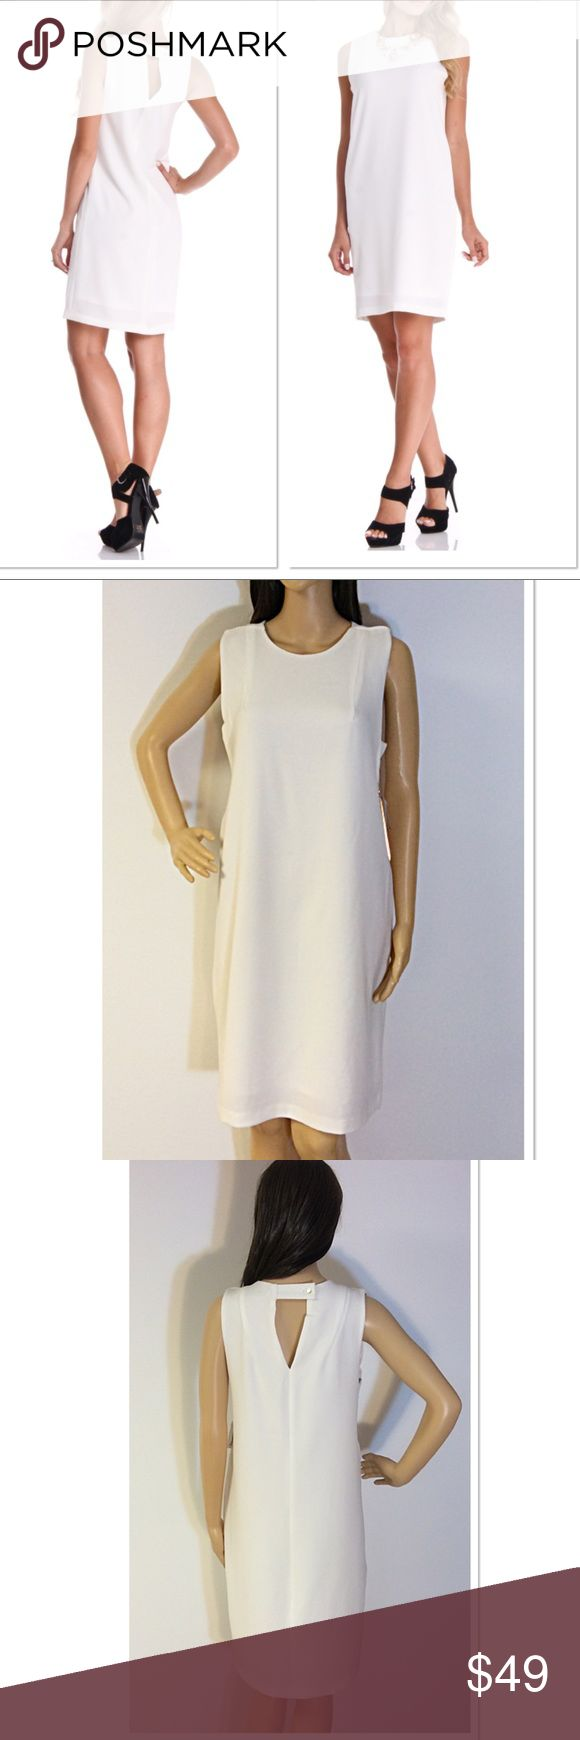 """DEX THE SUIT SHOP IVORY SHEATH DRESS Gorgeous dress with a keyhole back and loose fit. Fully lined. Very classy IVORY color. Measurements lying flat Bust 18.5"""" length 37"""".  Color is more like photos on mannequin instead of stock photos. Stunning piece. Dex The Suit Shop New York Dresses Midi"""